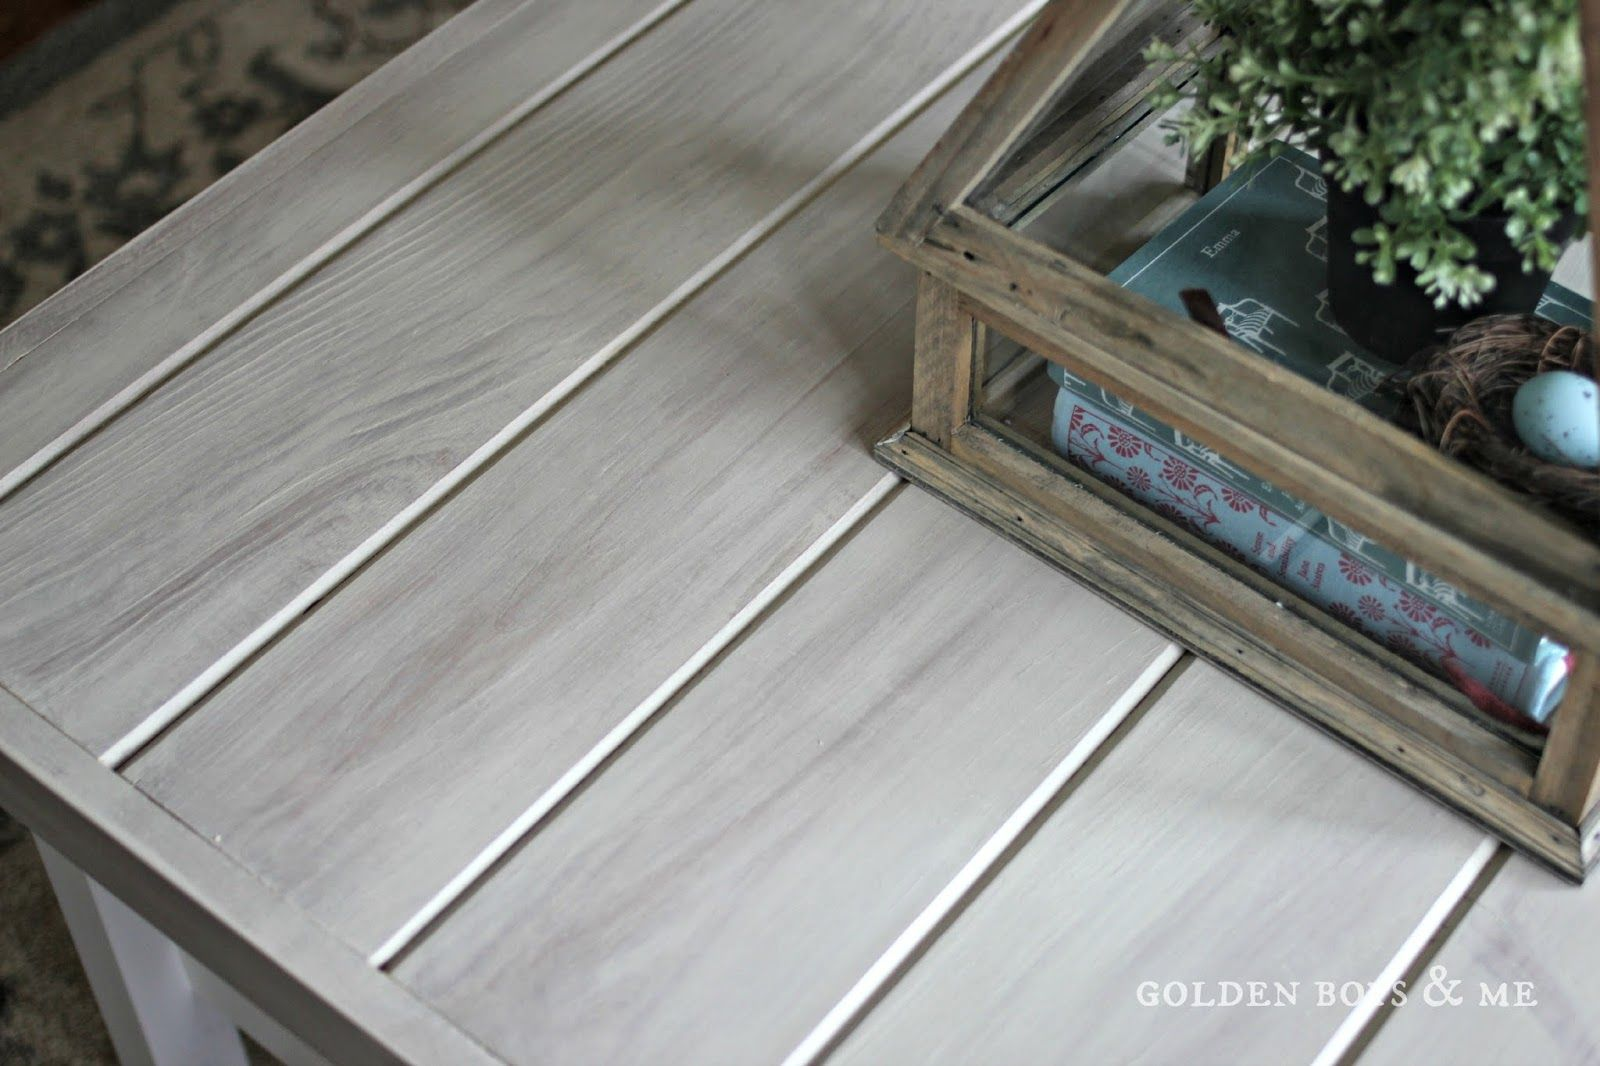 Gray Weathered Wood Look Using Vinegar Stain And Paint Goldenboysandme